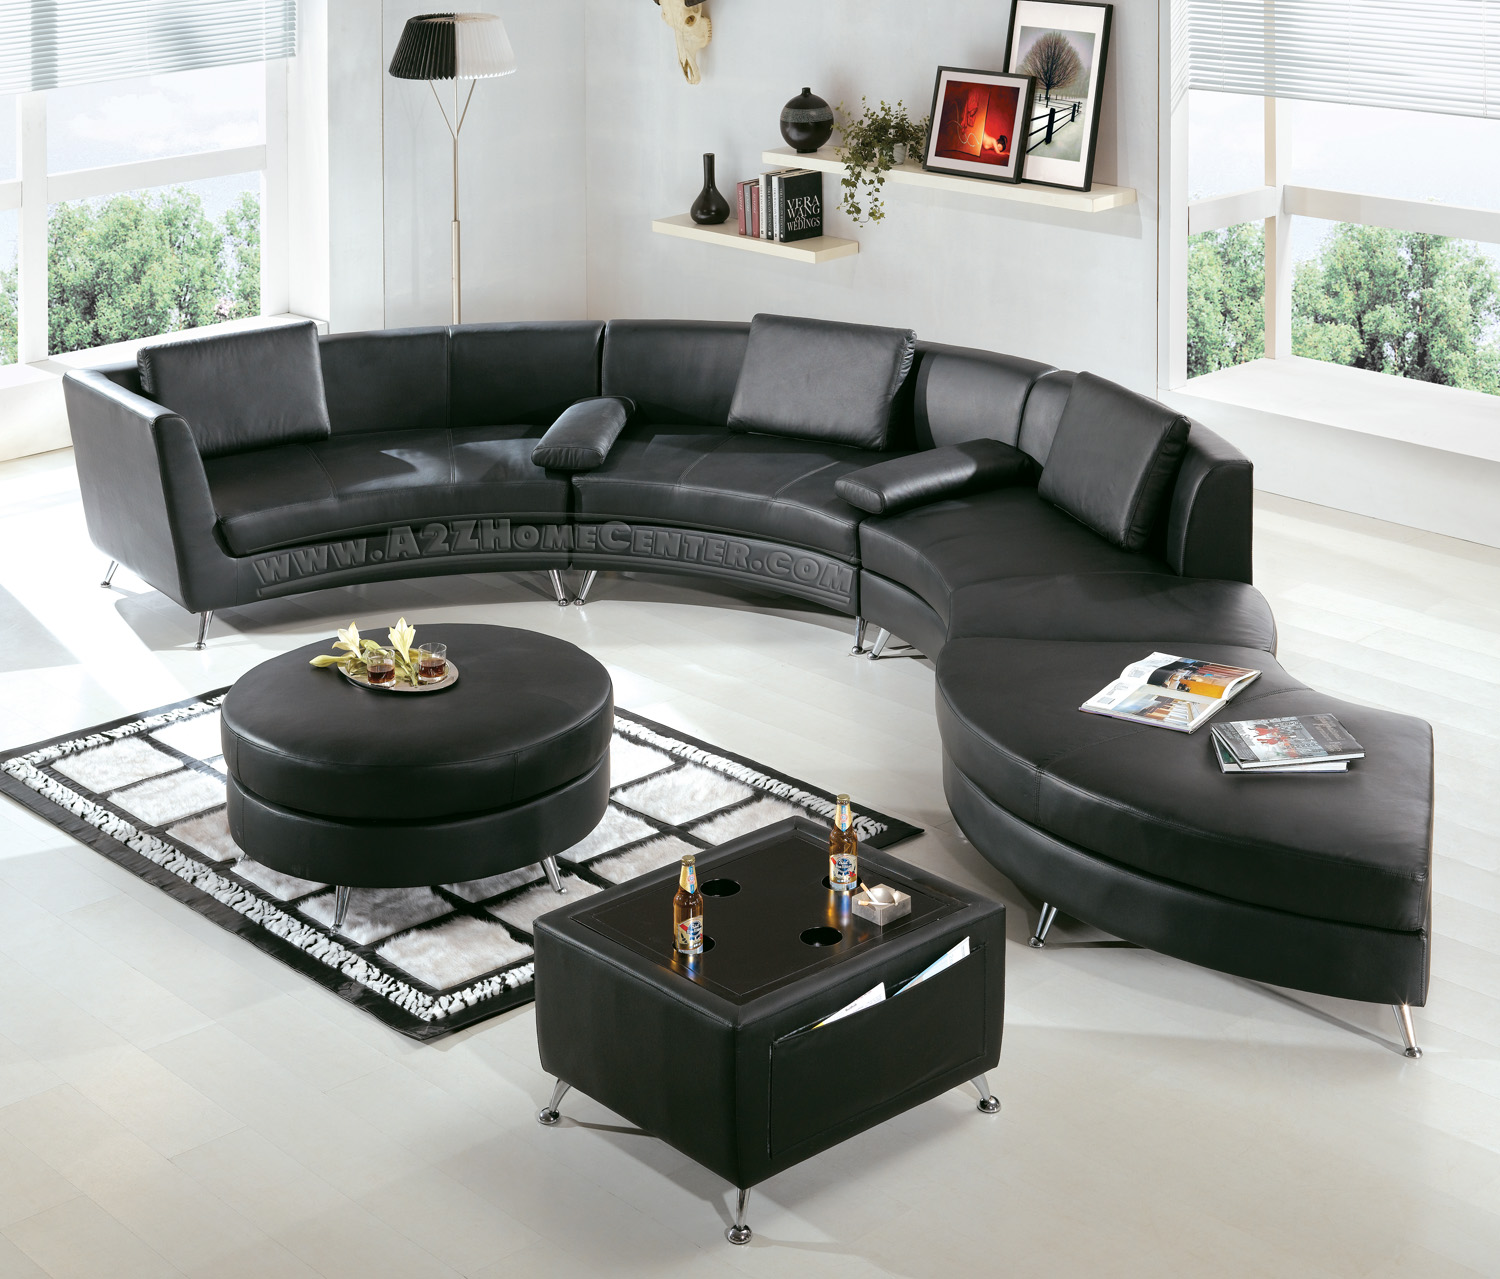 modern line furniture  commercial furniture  custom made furniture seating collection    in modern furniture black sectional sofa(optional . modern line furniture  commercial furniture  custom made